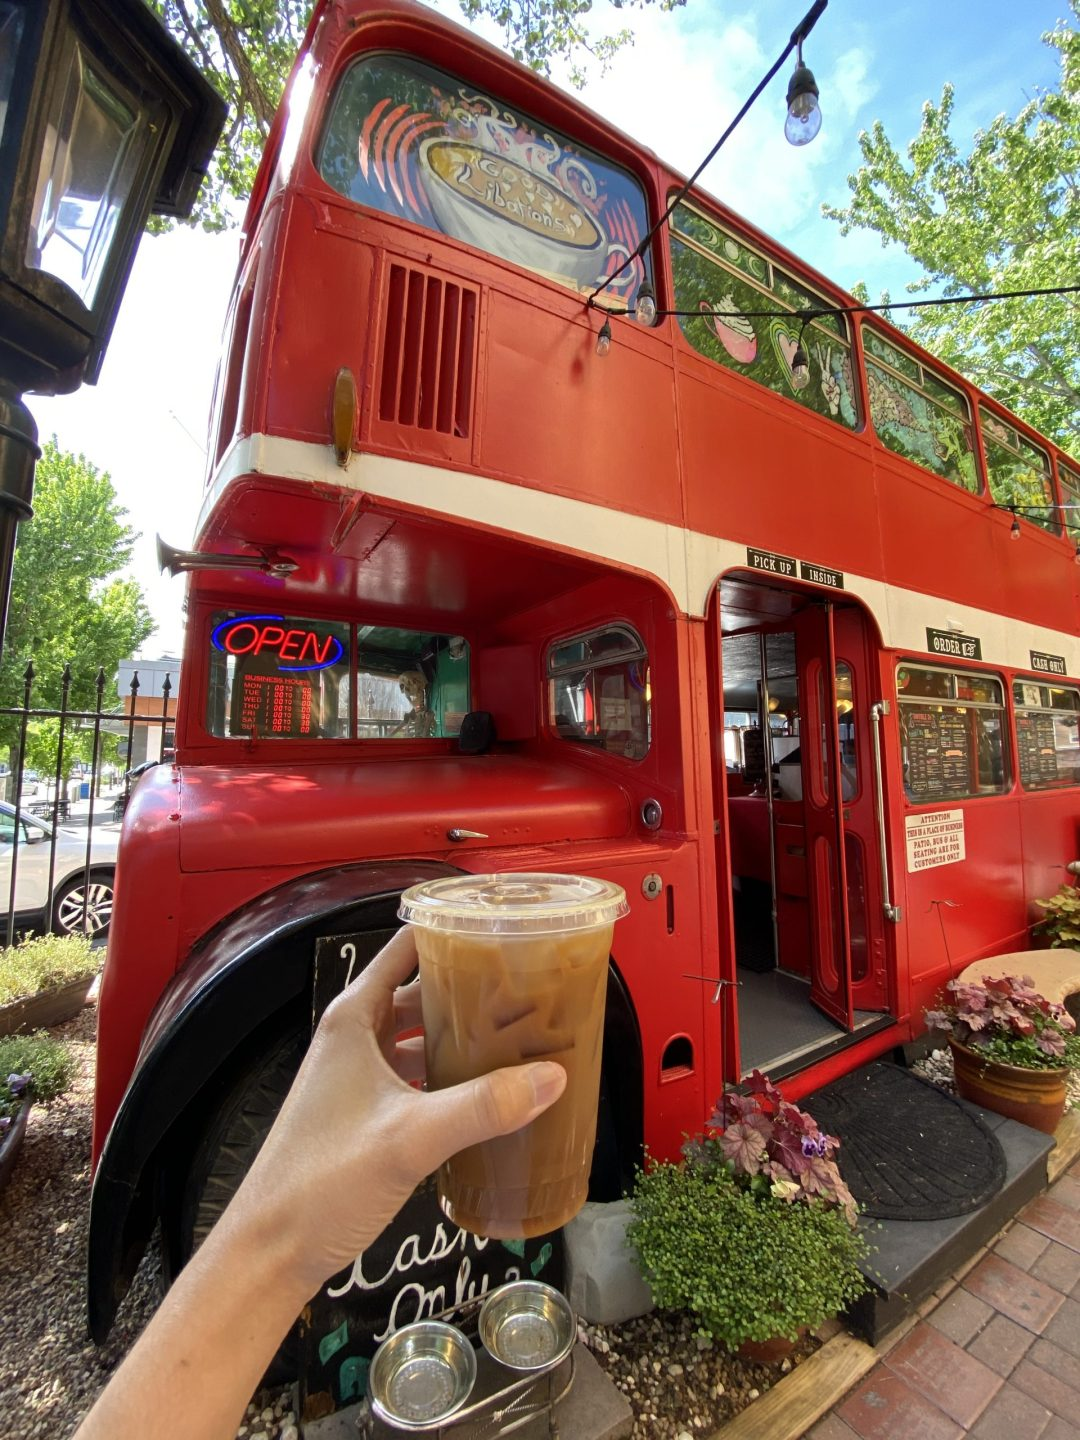 Iced coffee in front of a red double-decker bus